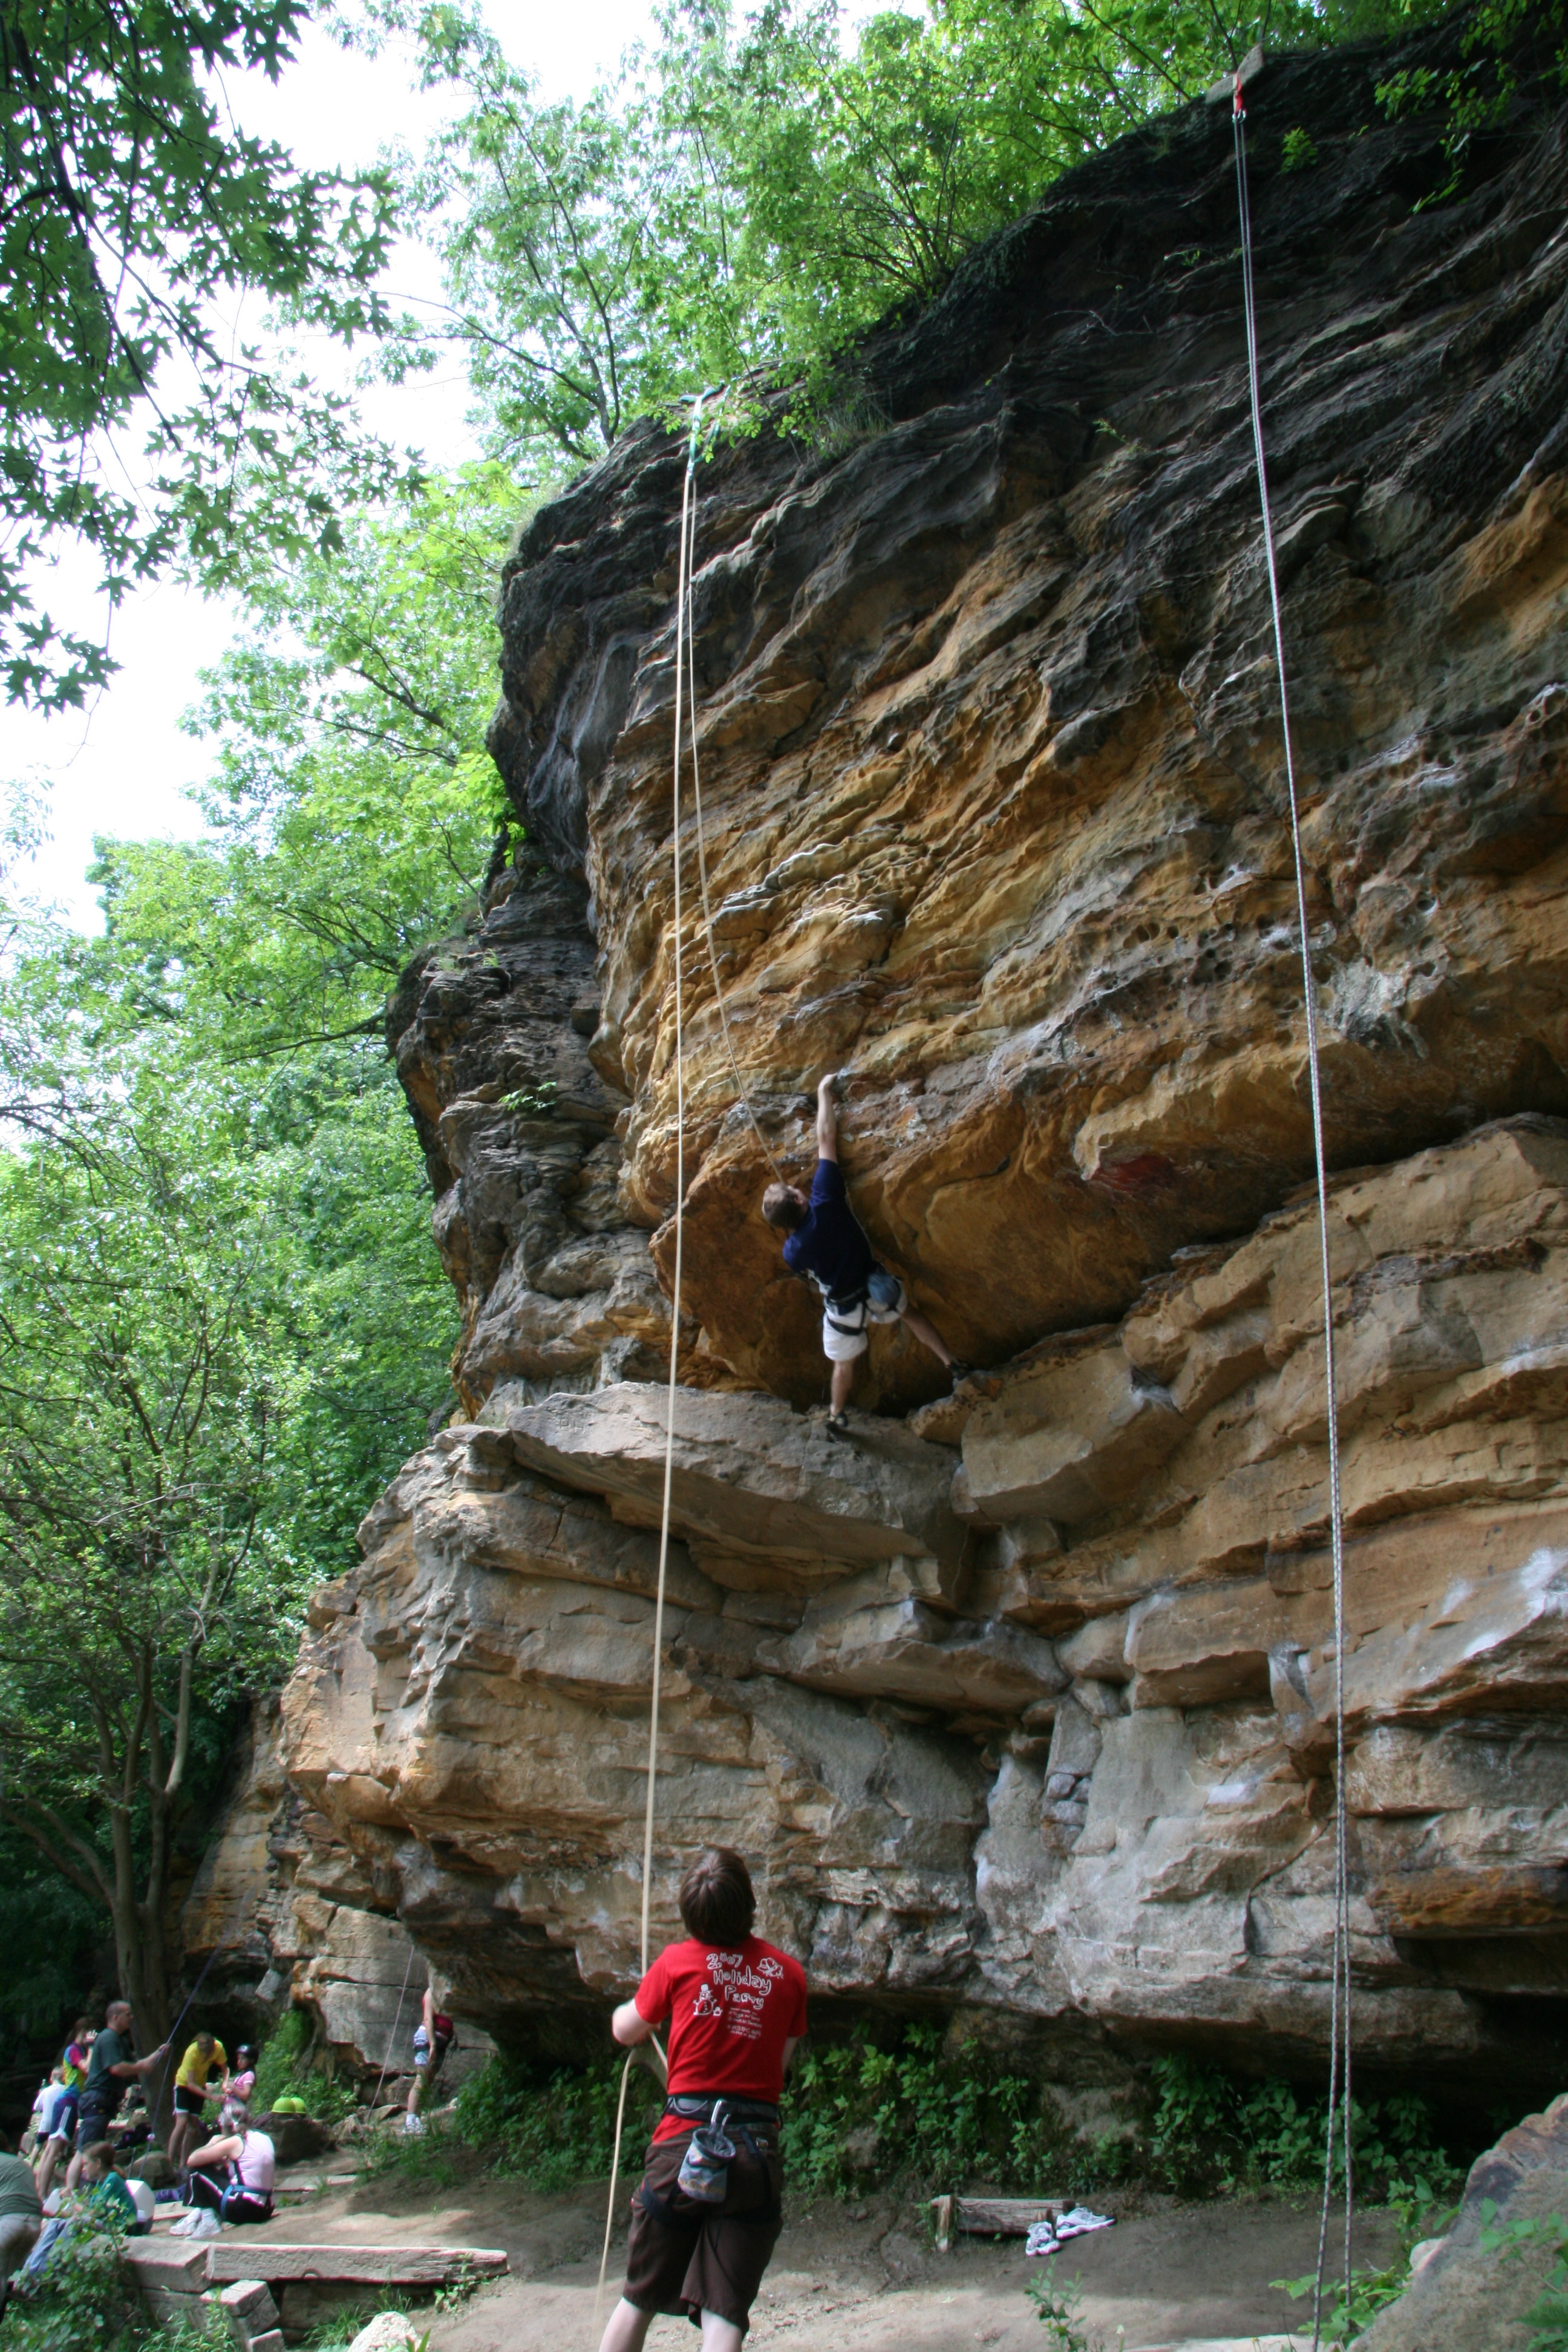 Michigan eaton county potterville - Popular For Rock Climbing